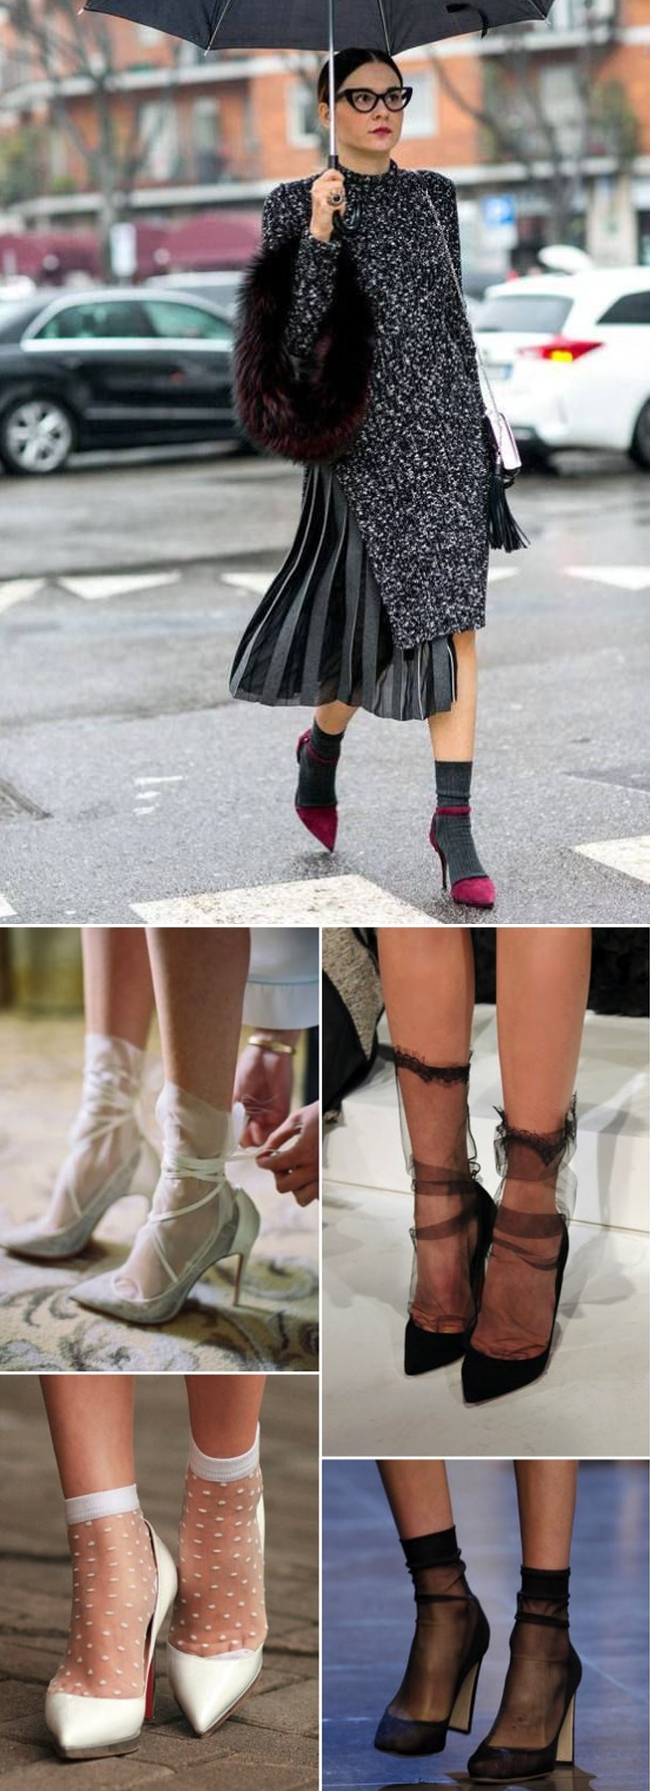 a988d536e07a0 We found a beautiful cross-section of looks and styles on netaporter, etsy,  asos, amazon, and the Mary Benson x ASOS glitter sock. By the way, this is  the ...